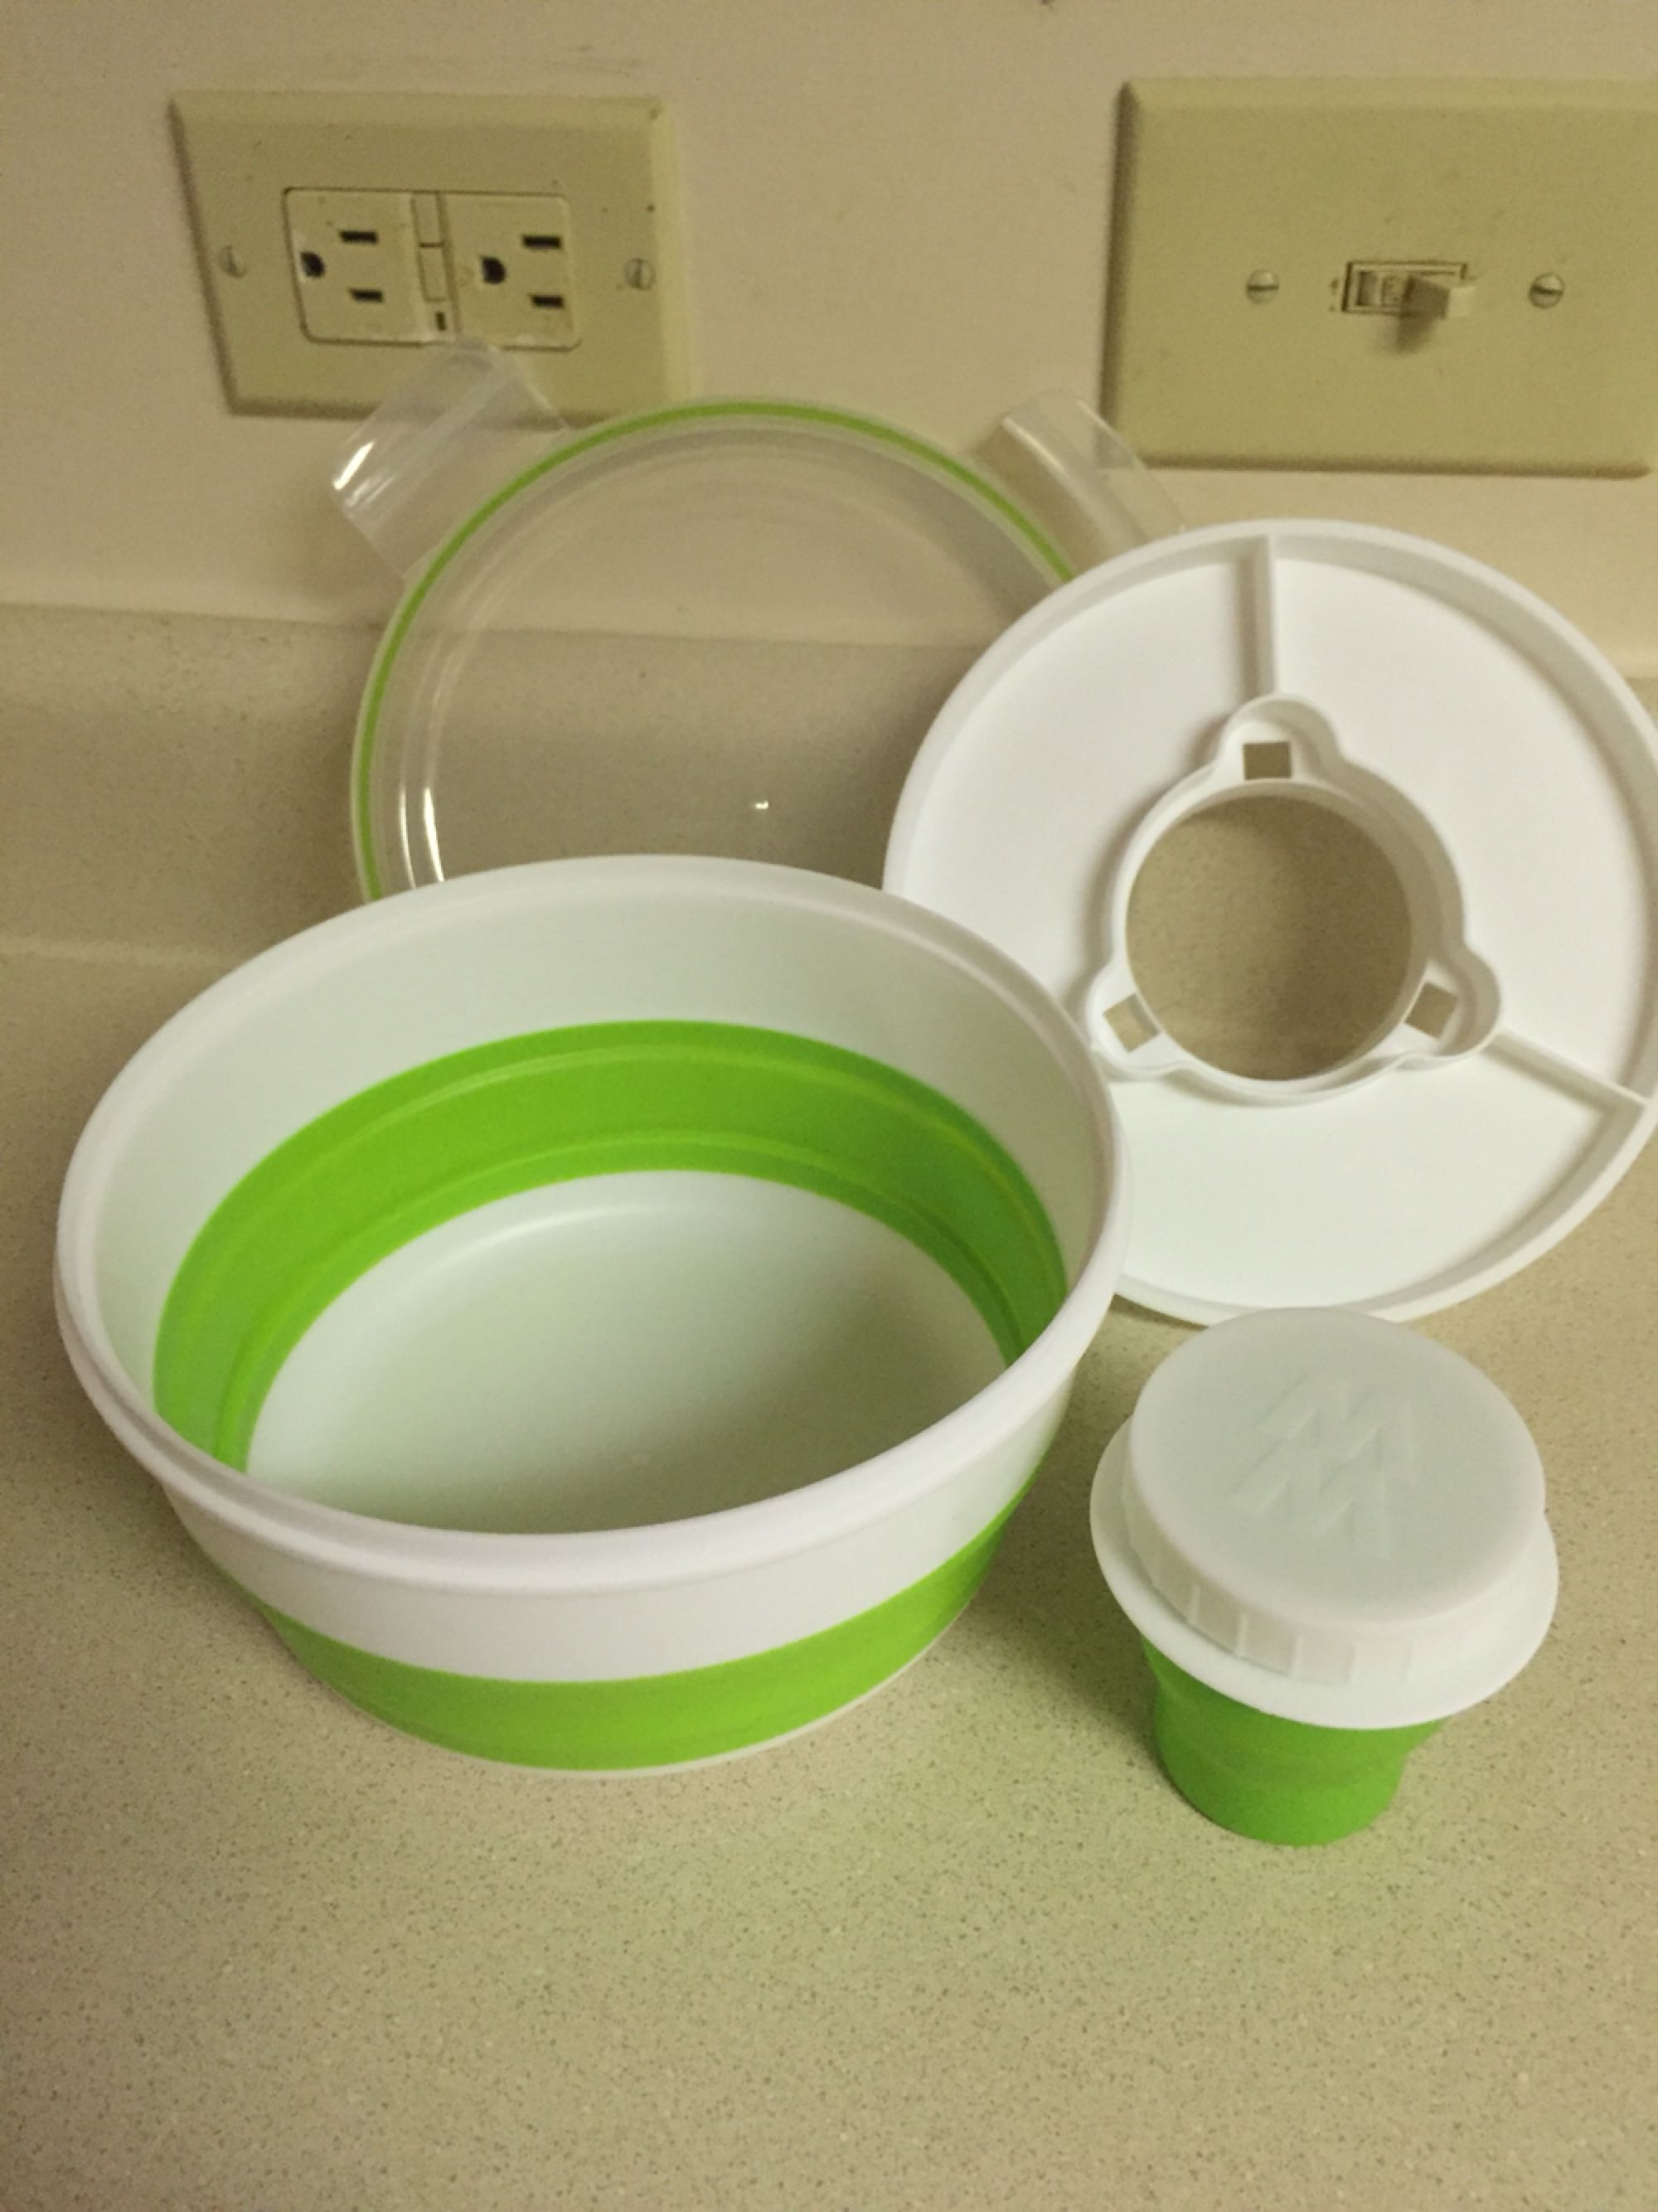 Weight Watcher Collapsible salad bowl